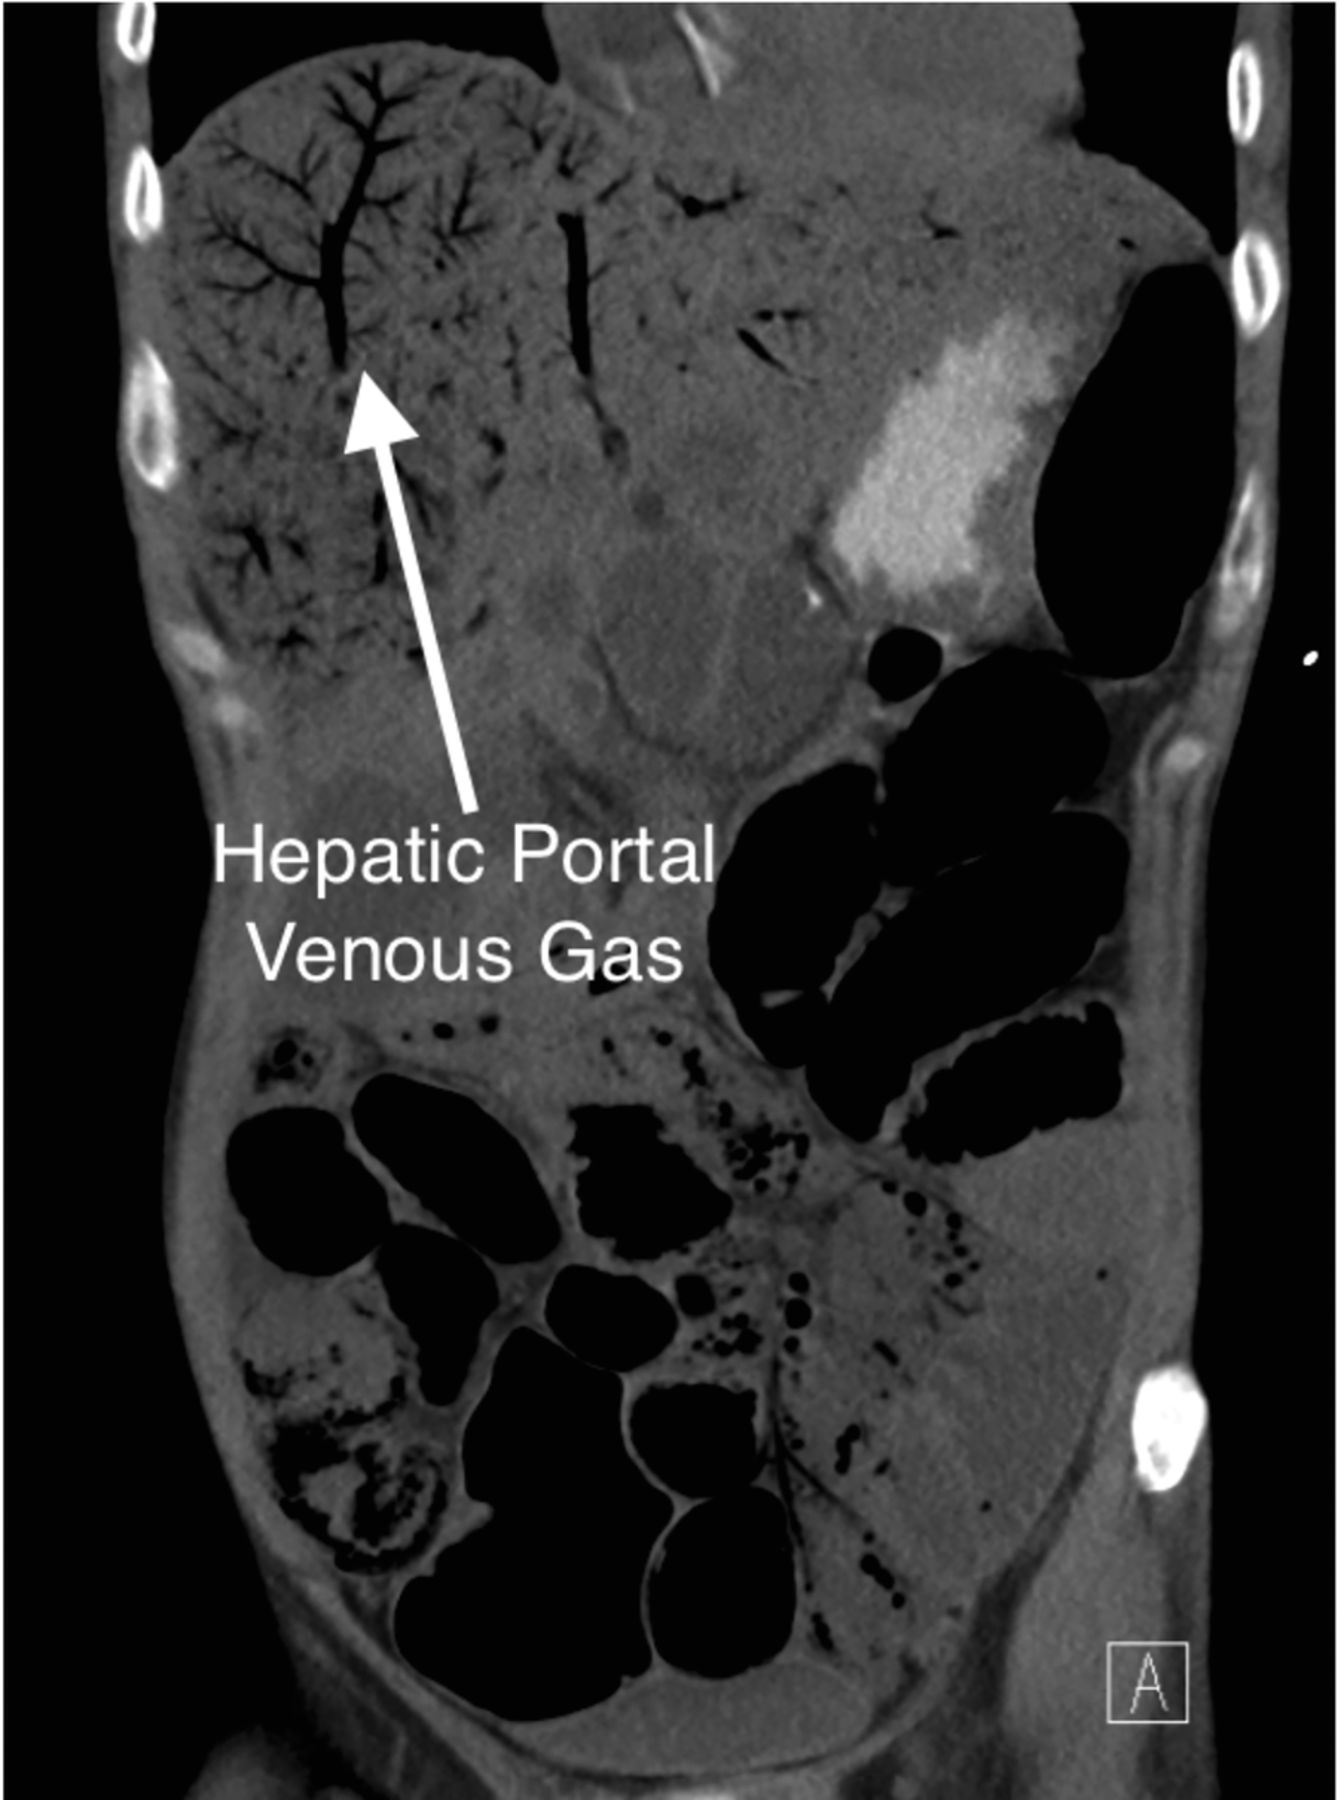 Hepatic portal venous gas with associated bowel ischaemia for Hepatic portal v